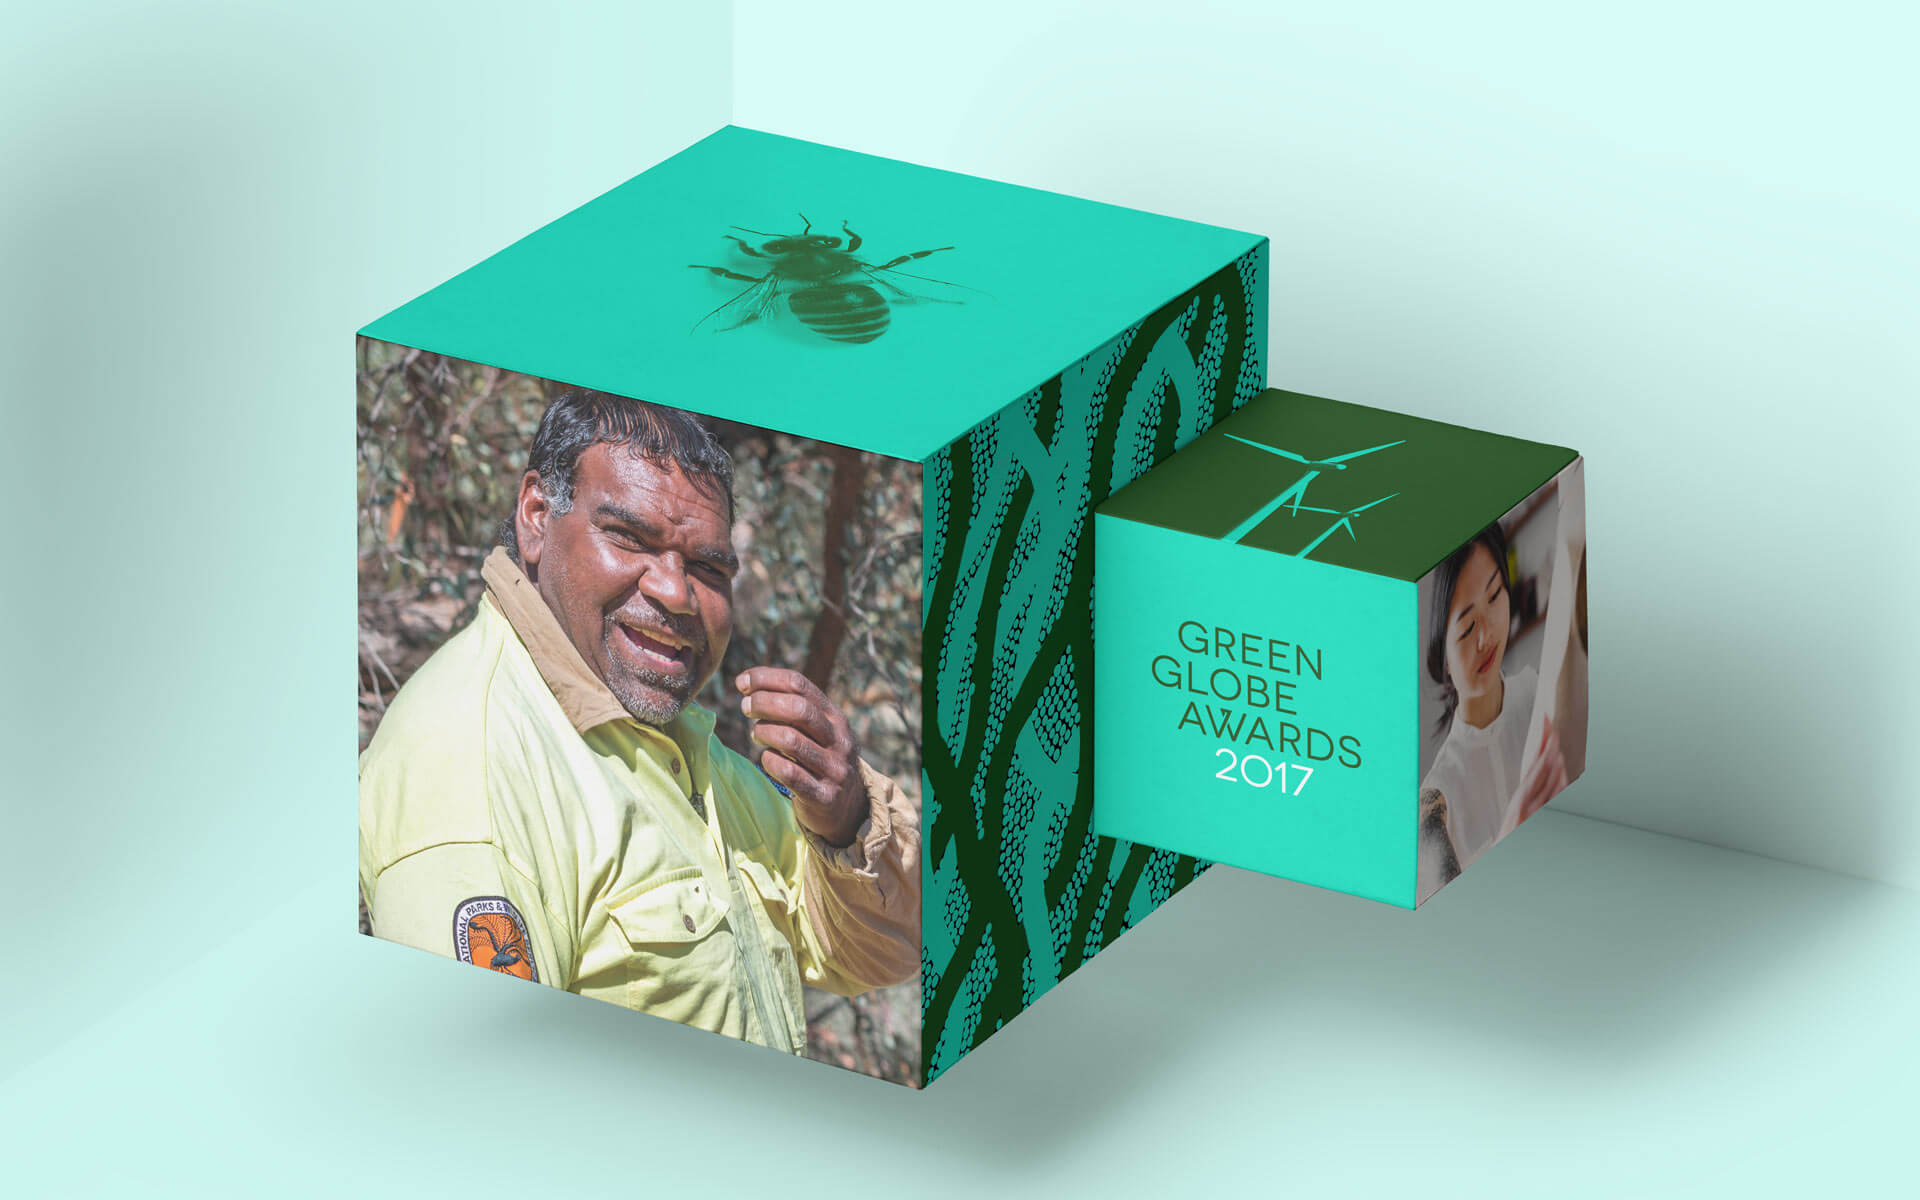 The Green Globe Awards rebrand, stage set boxes